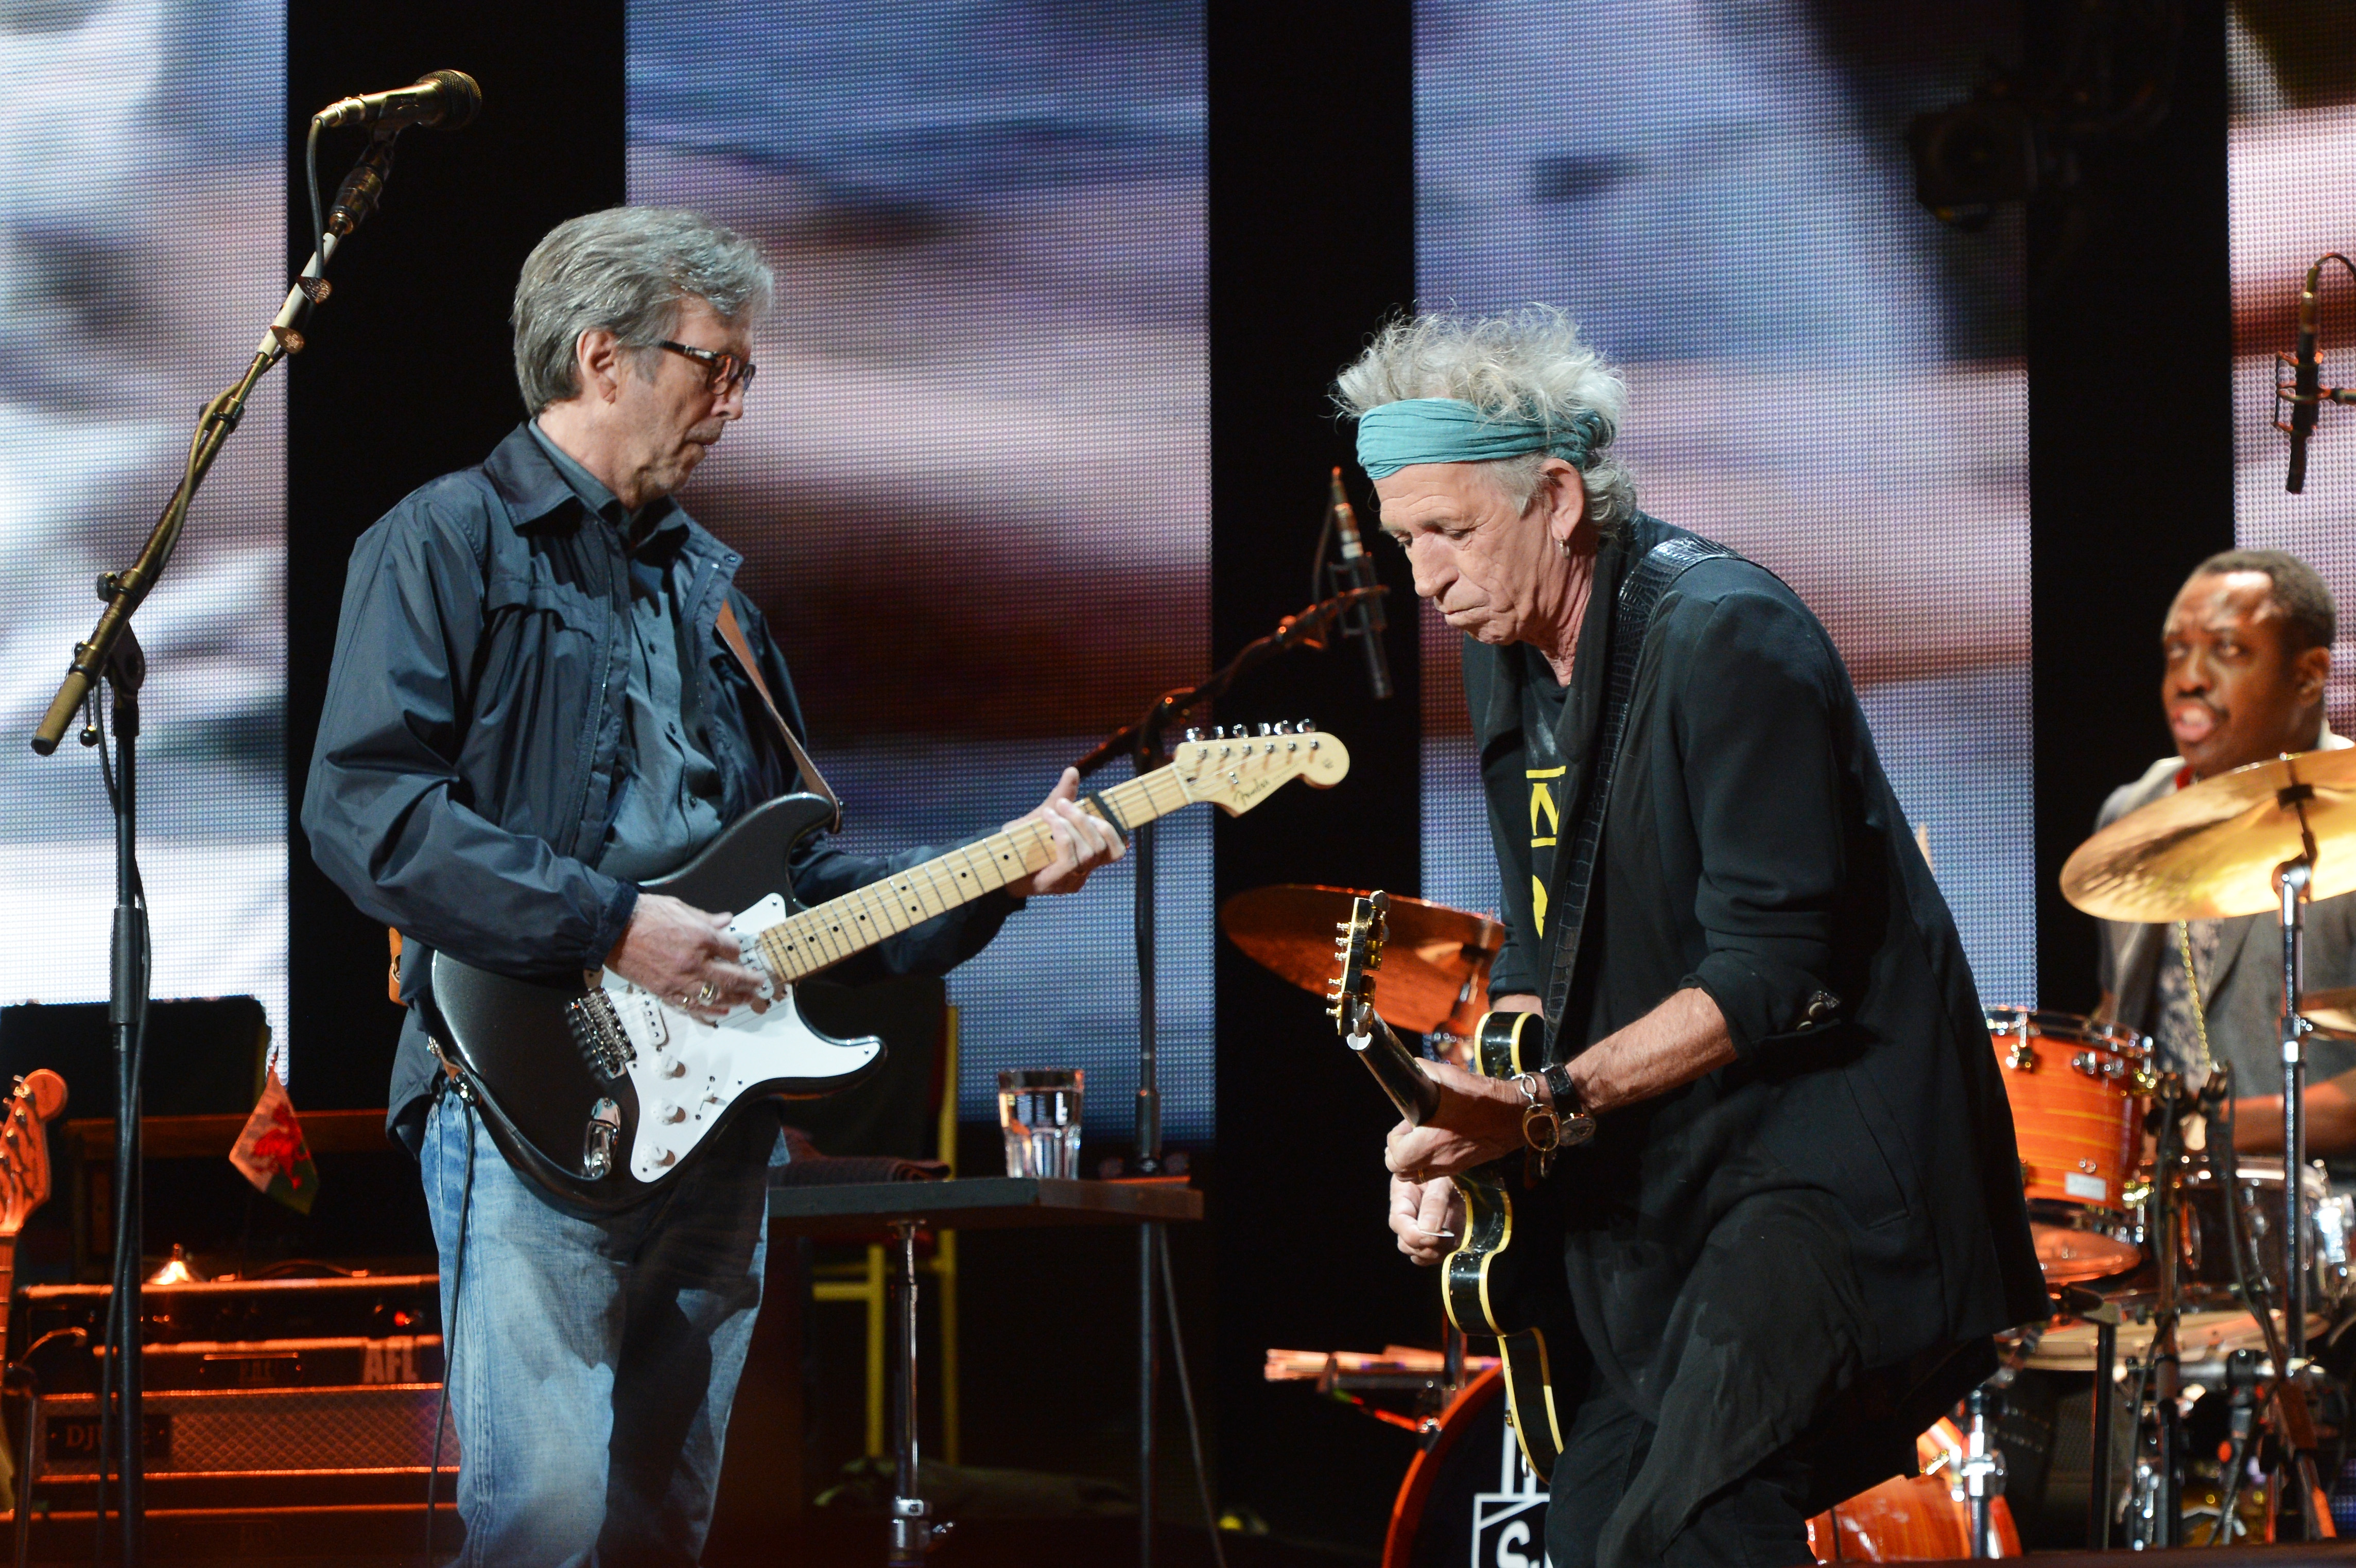 NEW YORK, NY - APRIL 13:  Eric Clapton (L) and Keith Richards perform on stage during the 2013 Crossroads Guitar Festival at Madison Square Garden on April 13, 2013 in New York City.  (Photo by Larry Busacca/Getty Images)